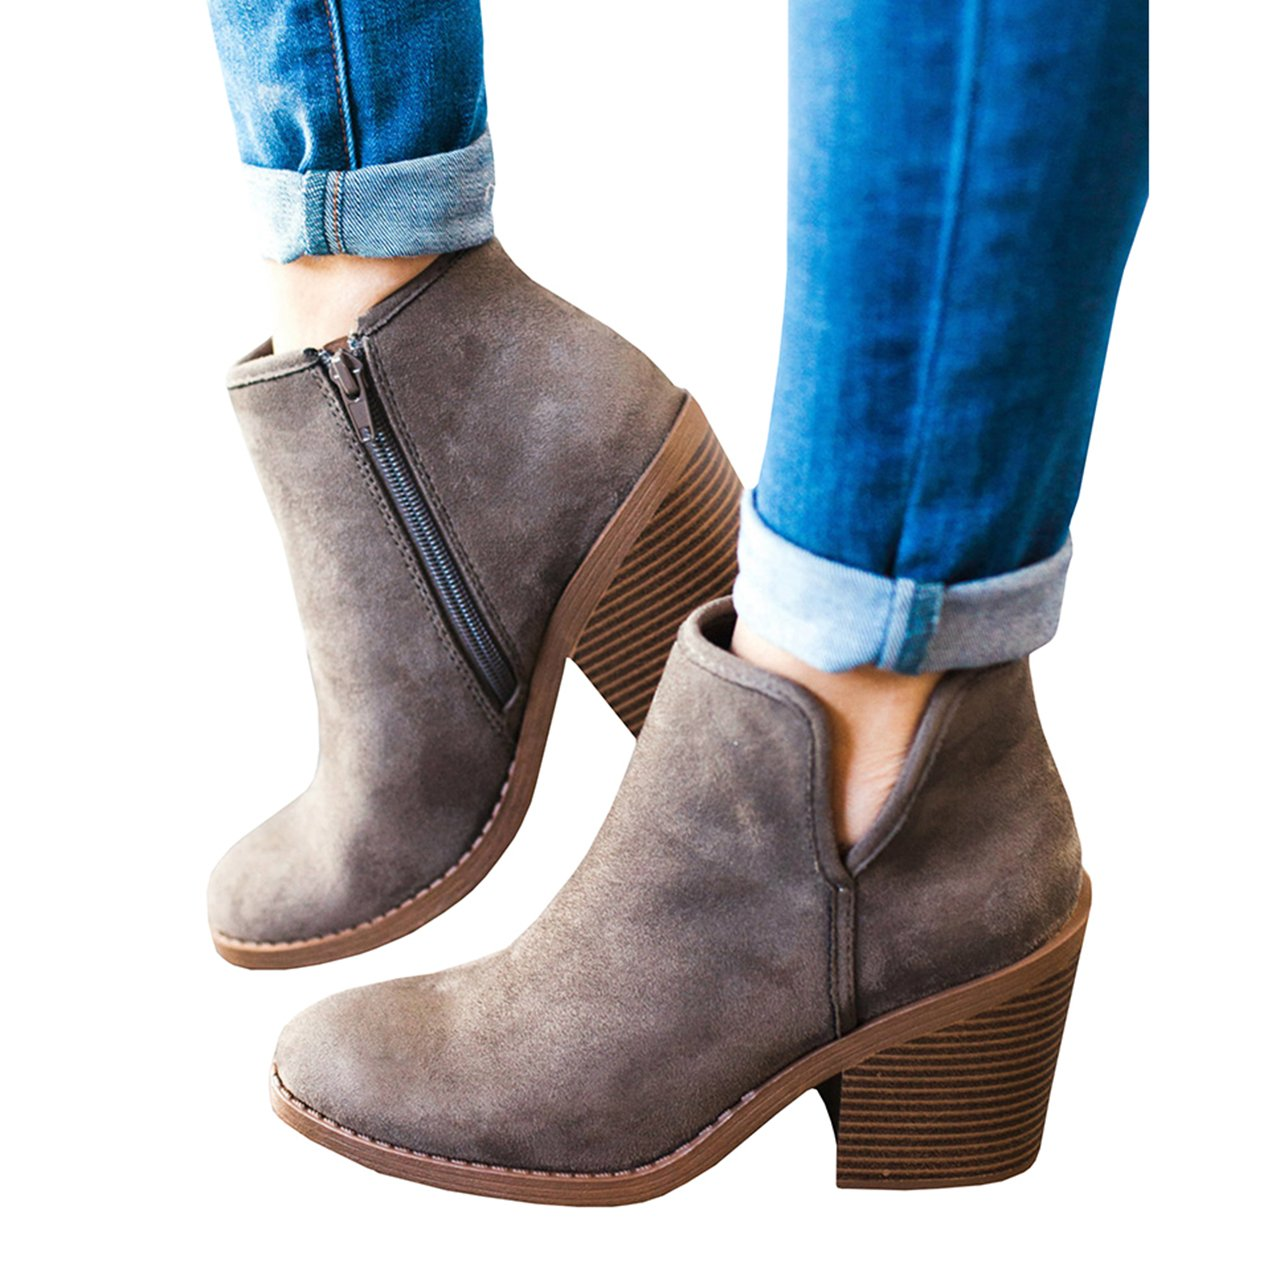 d691384230a Amazon.com  Womens Ankle Booties Chunky Side V Cut Block High Heel Zipper  Pointed Toe Boots  Clothing